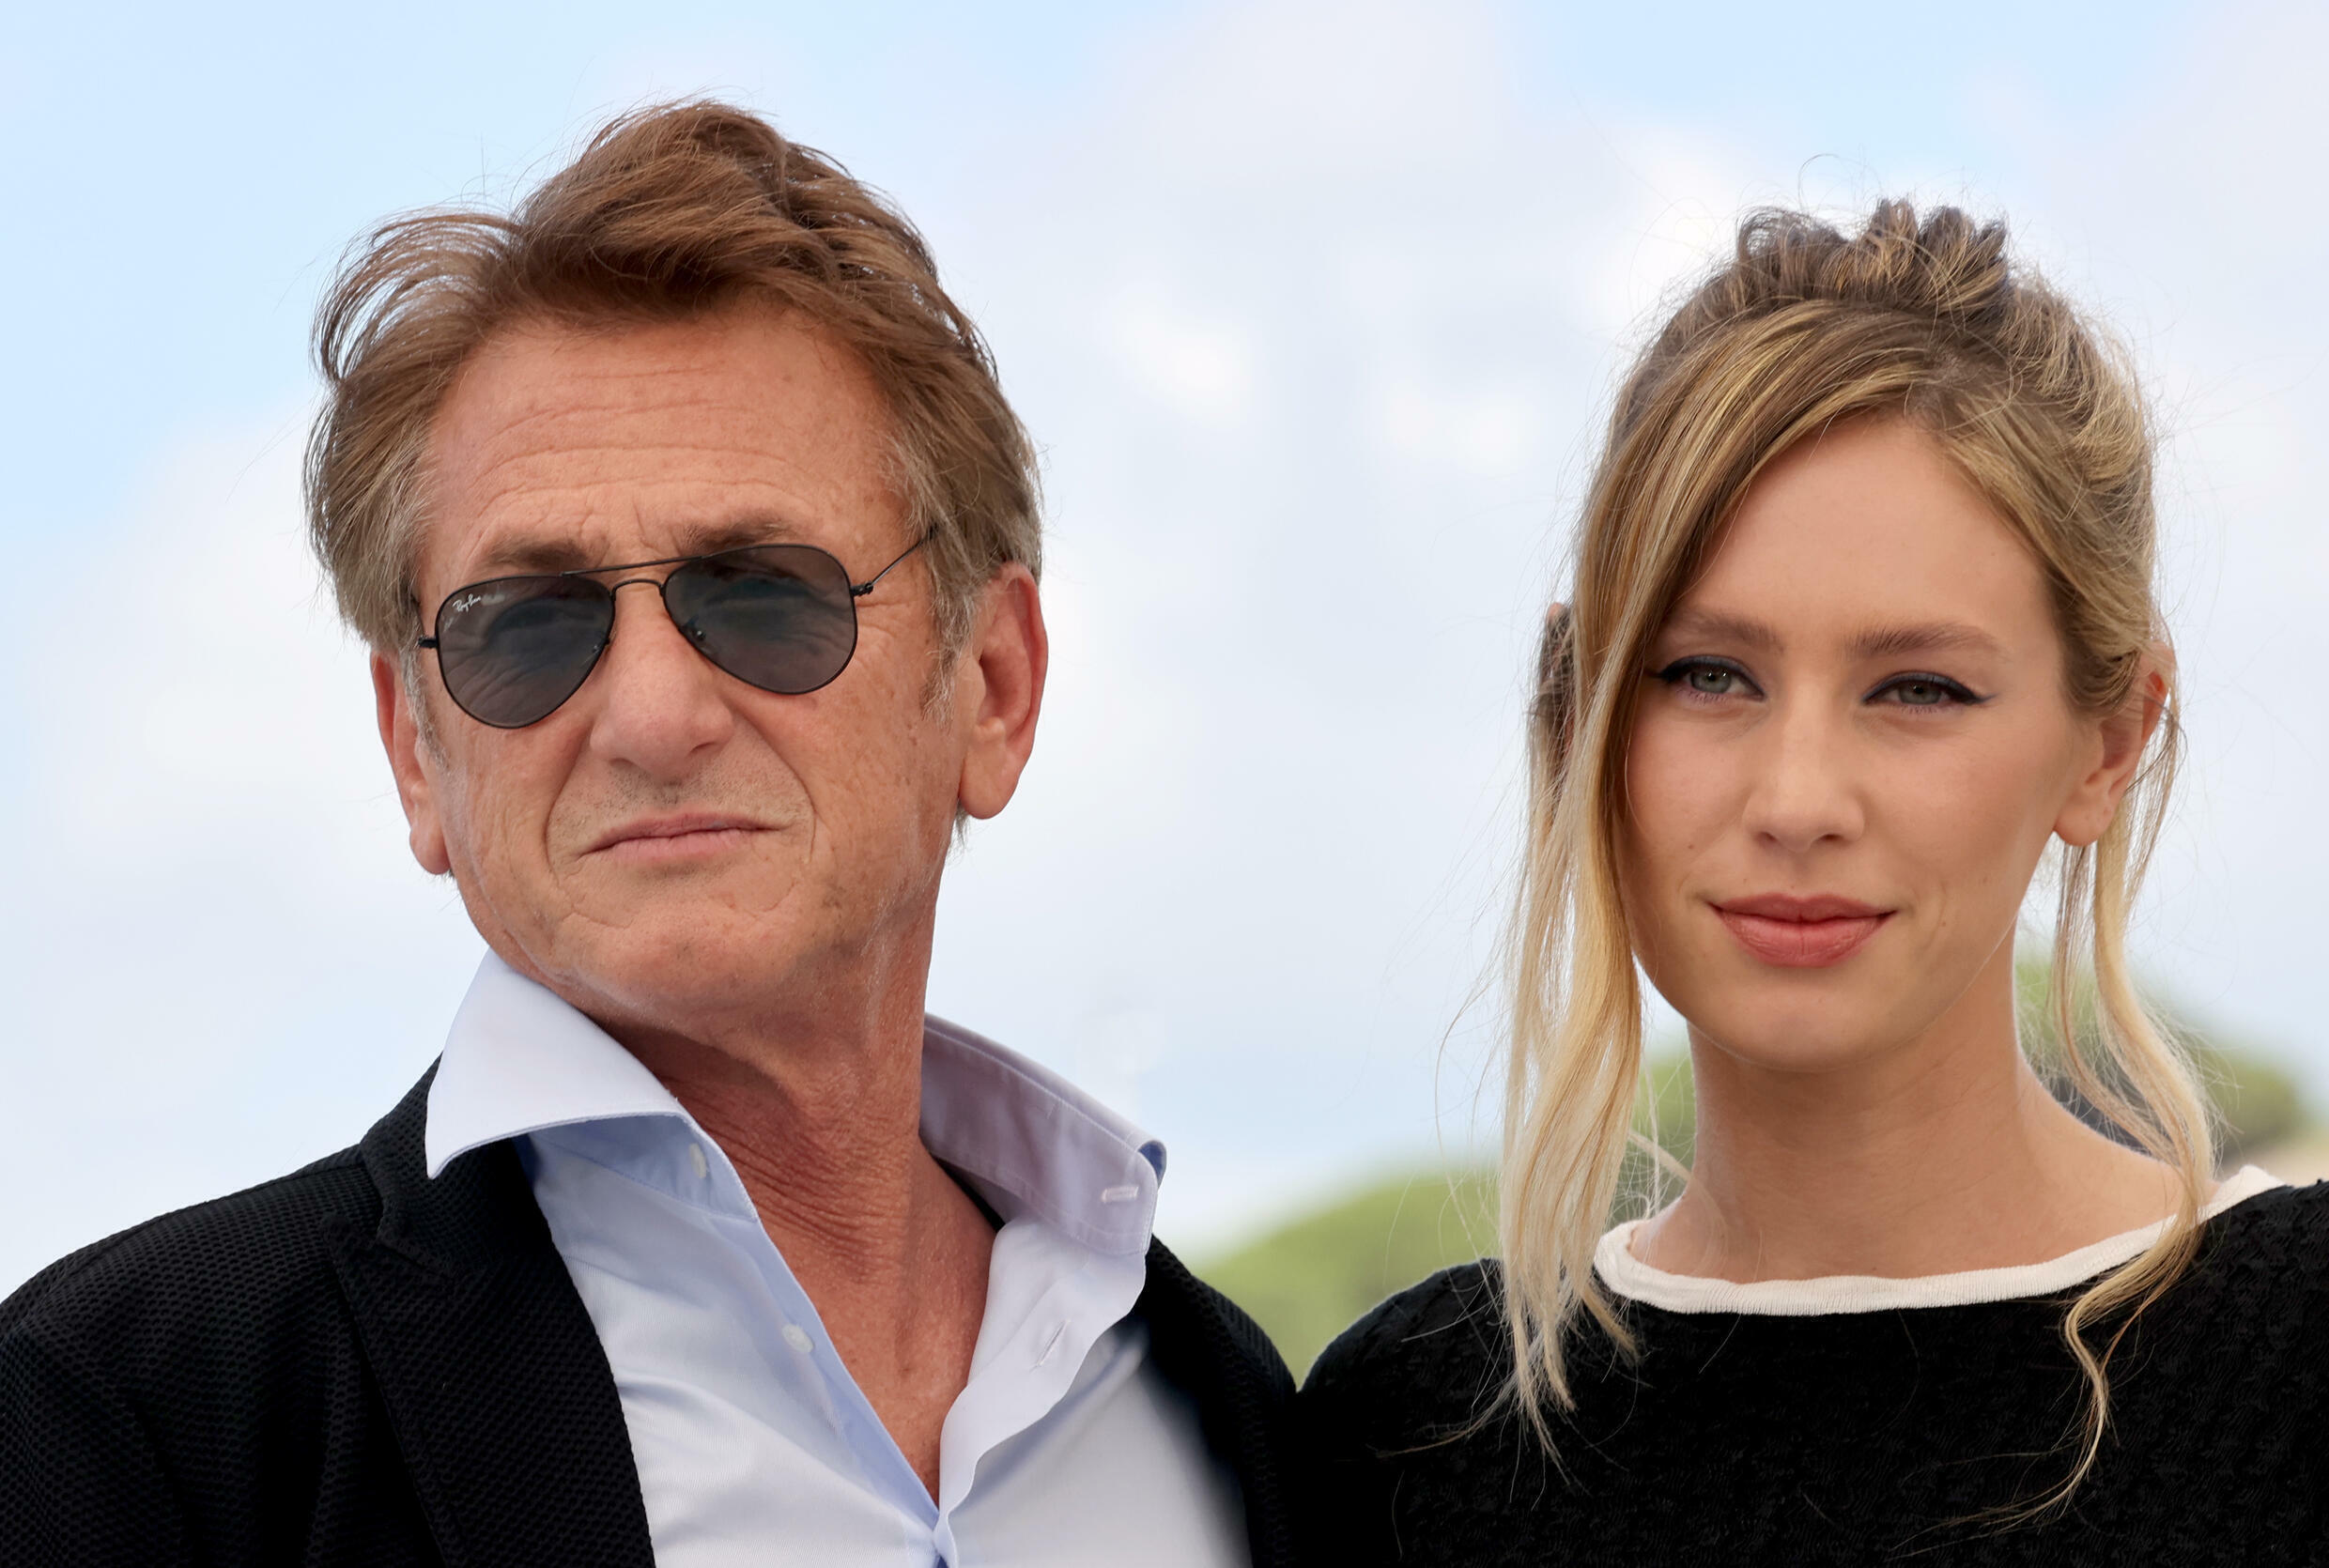 Sean Penn and daughter Dylan Penn, co-stars in 'Flag Day' which received a standing ovation at its premiere in Cannes on Saturday.